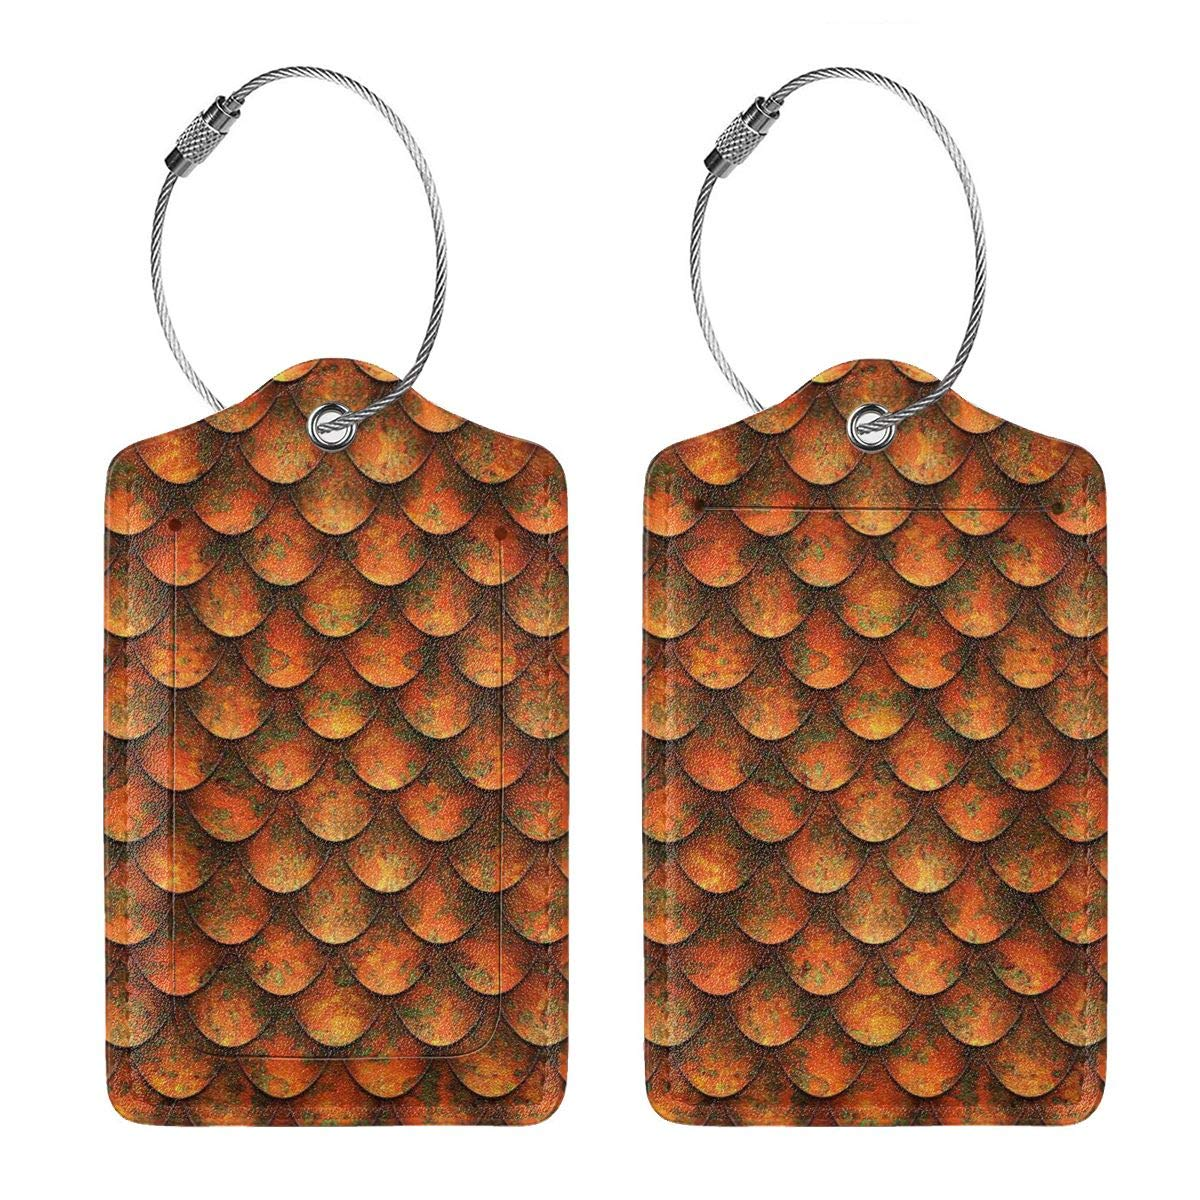 Dragon-Scale Leather Luggage Tags Personalized Privacy Cover With Privacy Flap